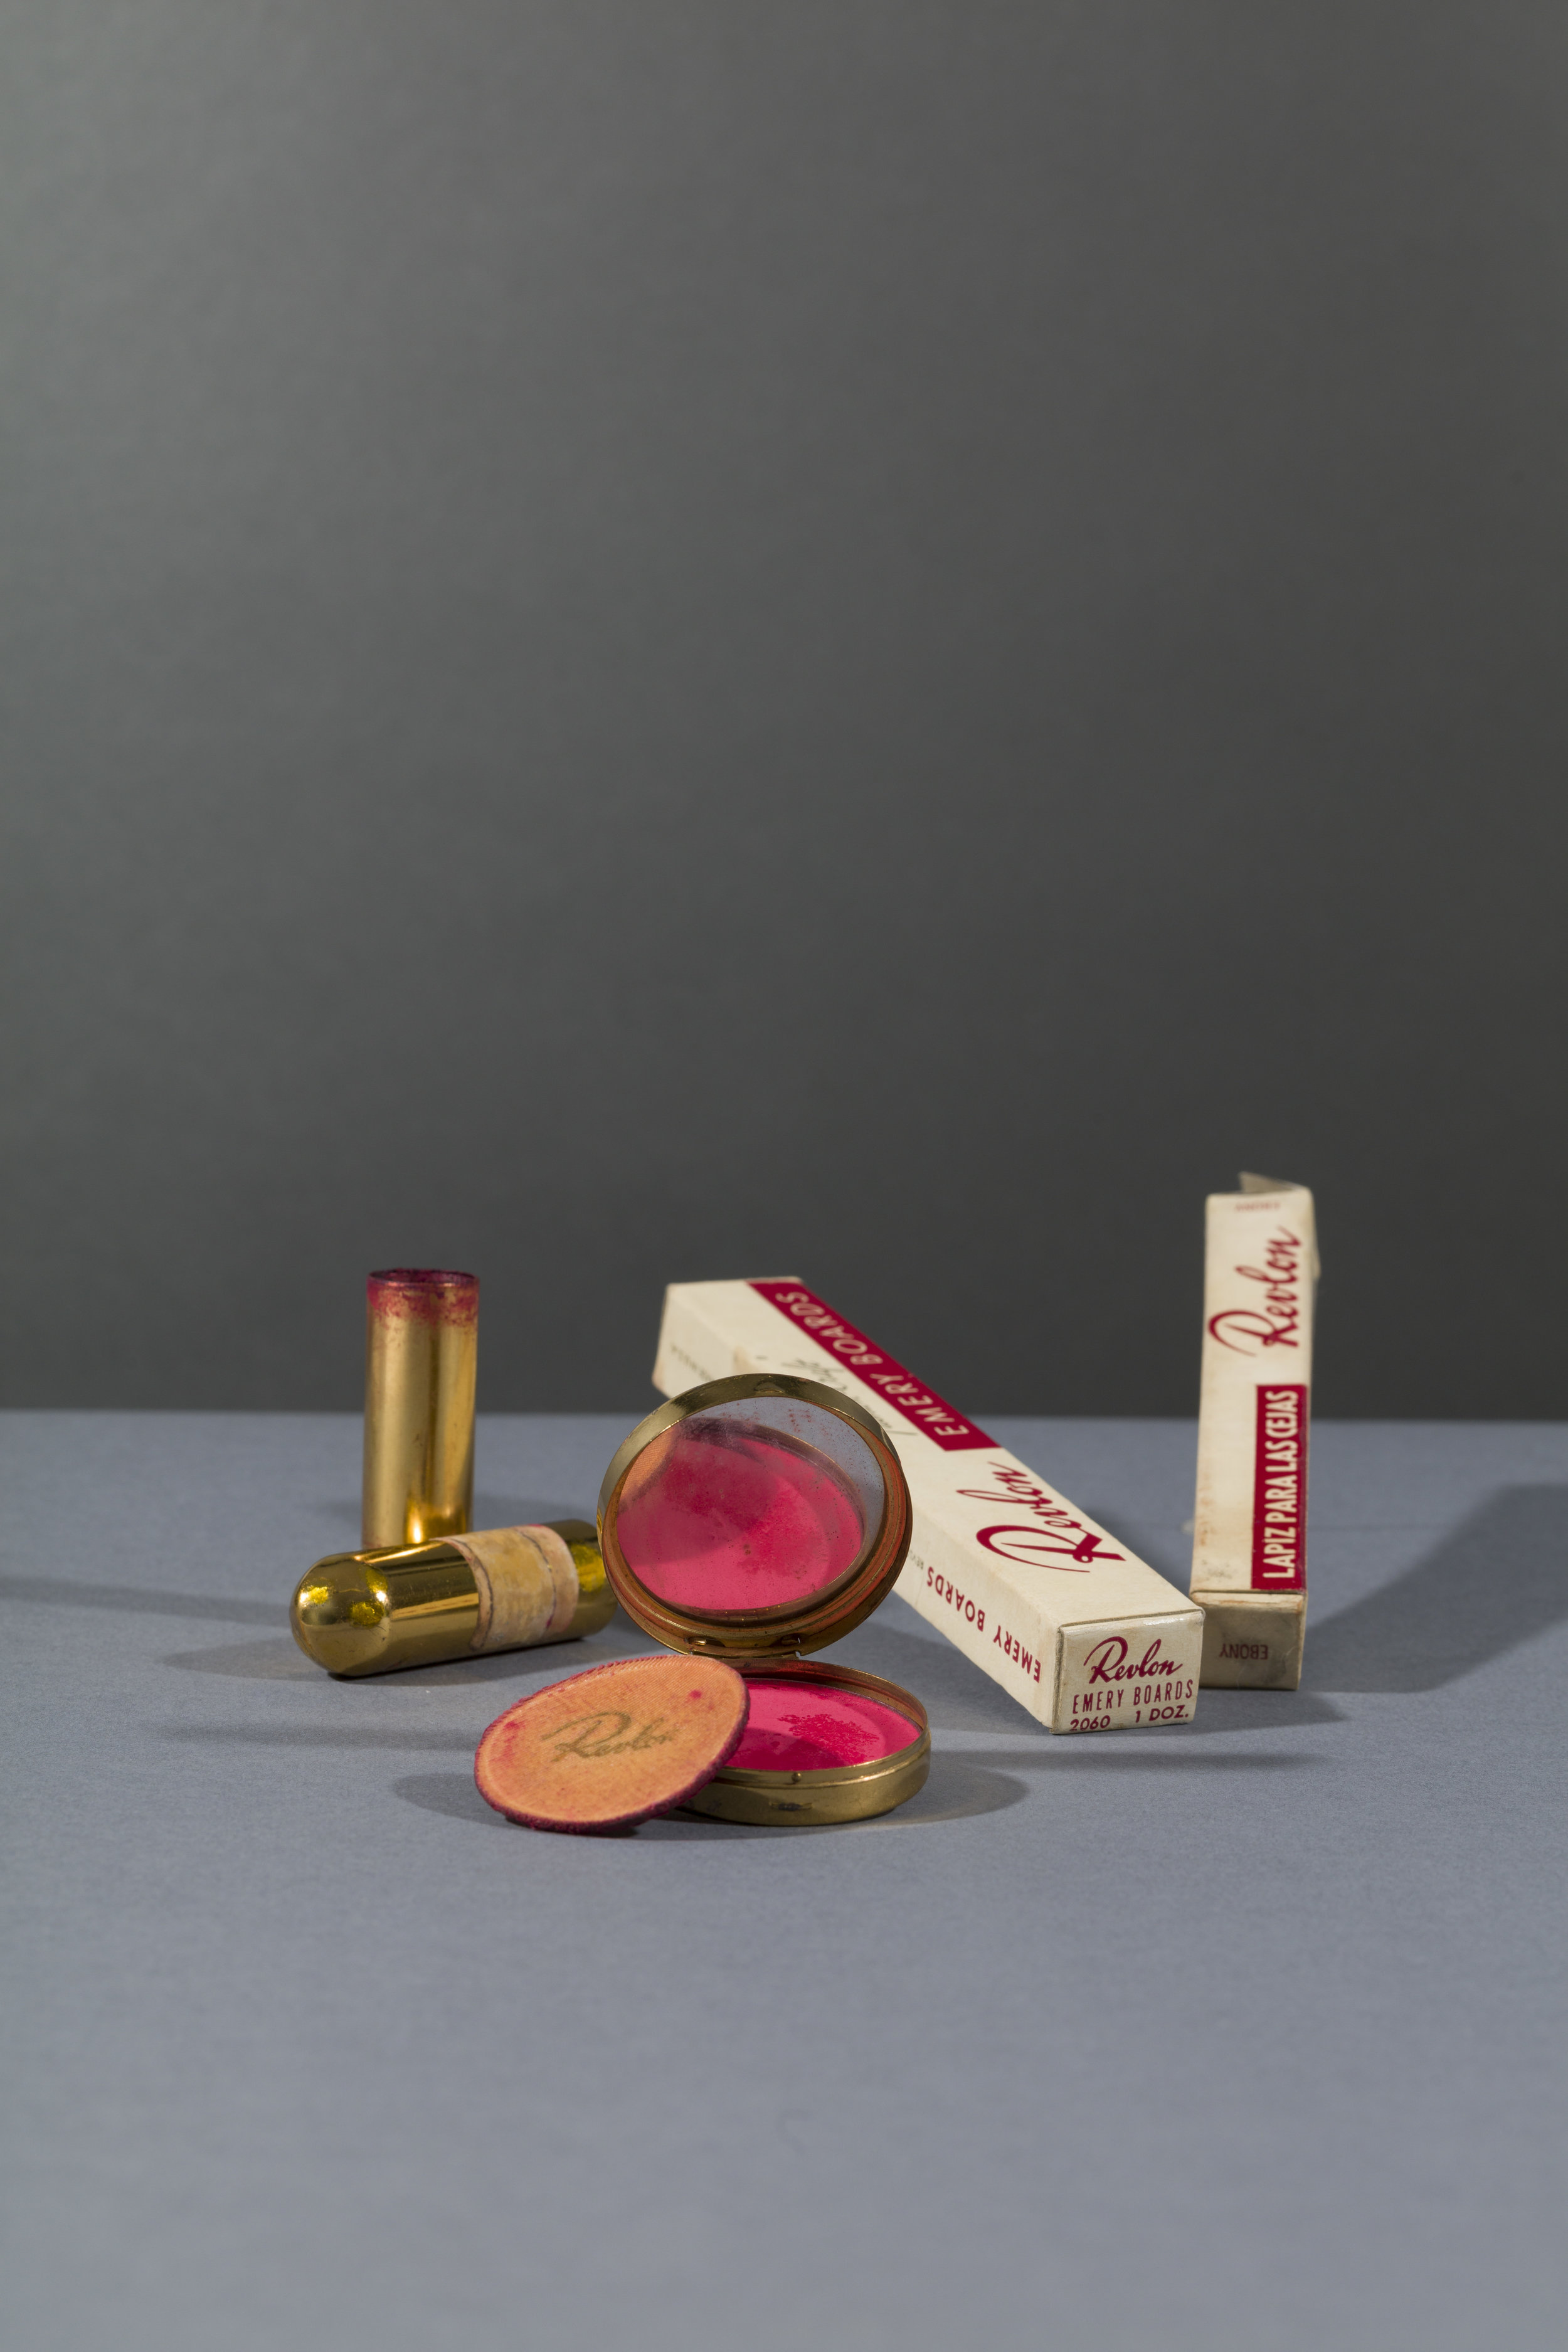 Revlon compact and powderpuff with blusher in 'Clear Red' and Revlon lipstick in 'Everything's Rosy'; emery boards and eyebrow pencil in 'Ebony'. Before 1954. Photograph Javier Hinojosa.  © Diego Riviera and Frida Kahlo Archives, Banco de México, Fiduciary of the Trust of the Diego Riviera and Frida Kahlo Museums.